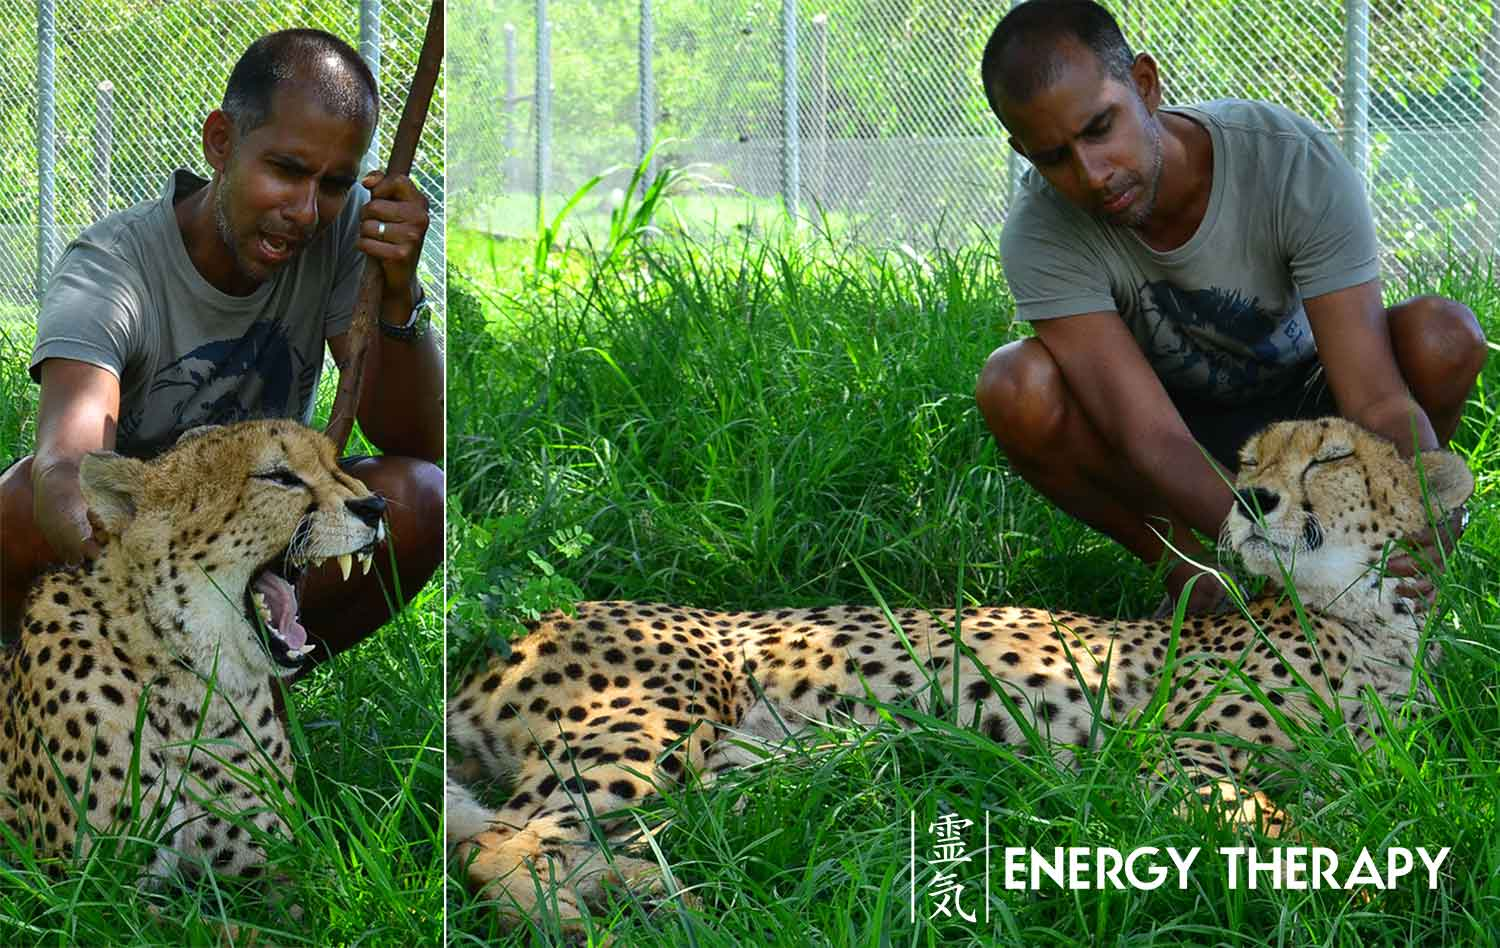 esp and animal communication - jaime tanna and cheetah massage